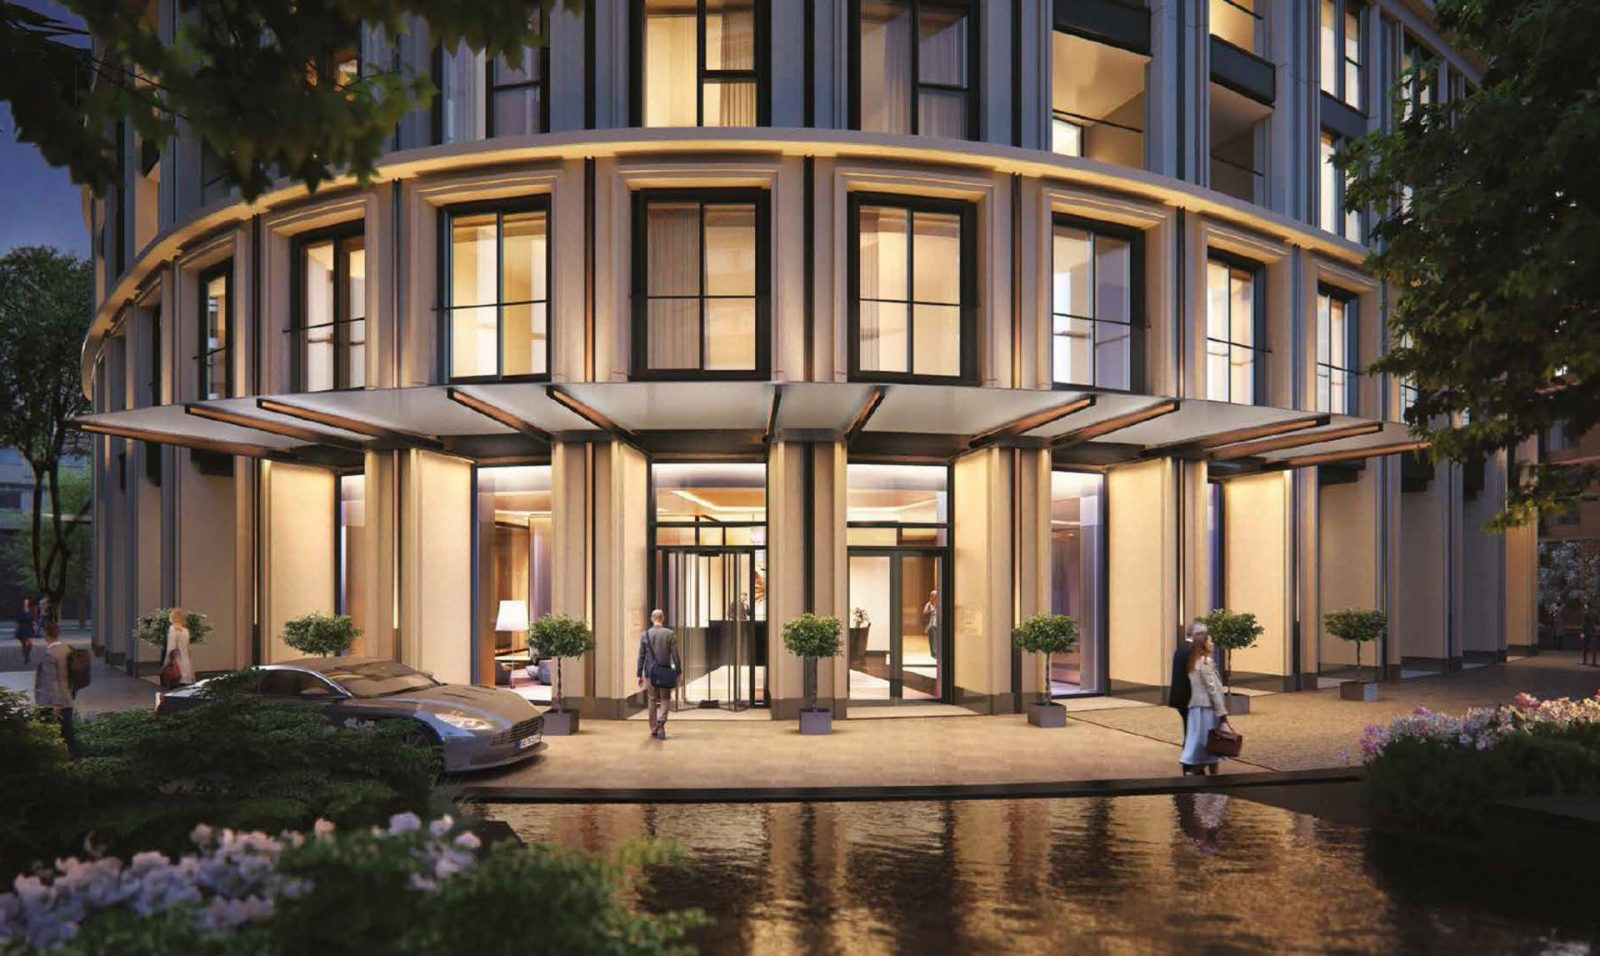 westmark tower london modern georgian architecture berkeley homes architects jersey5